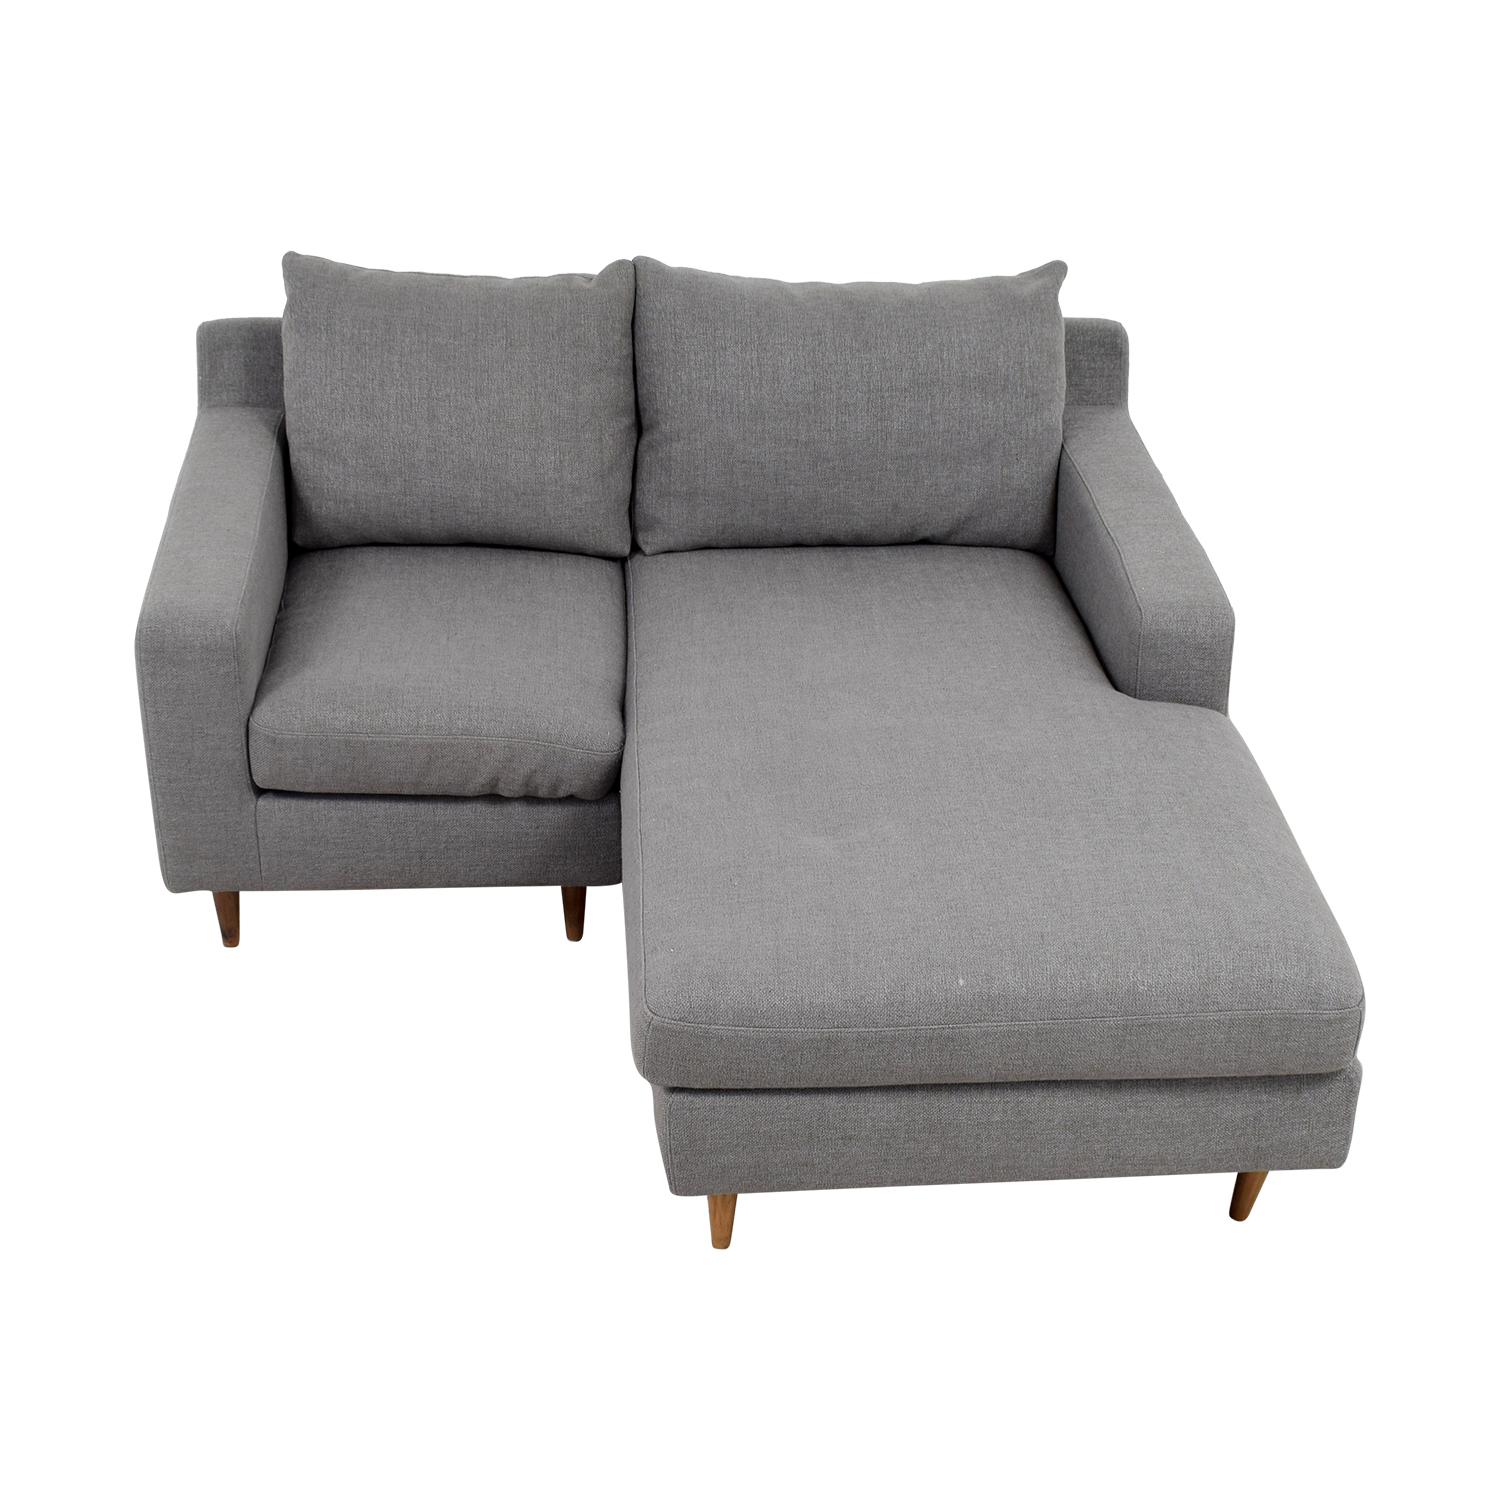 shop Interior Define Interior Define Custom Grey Loveseat with Chaise online